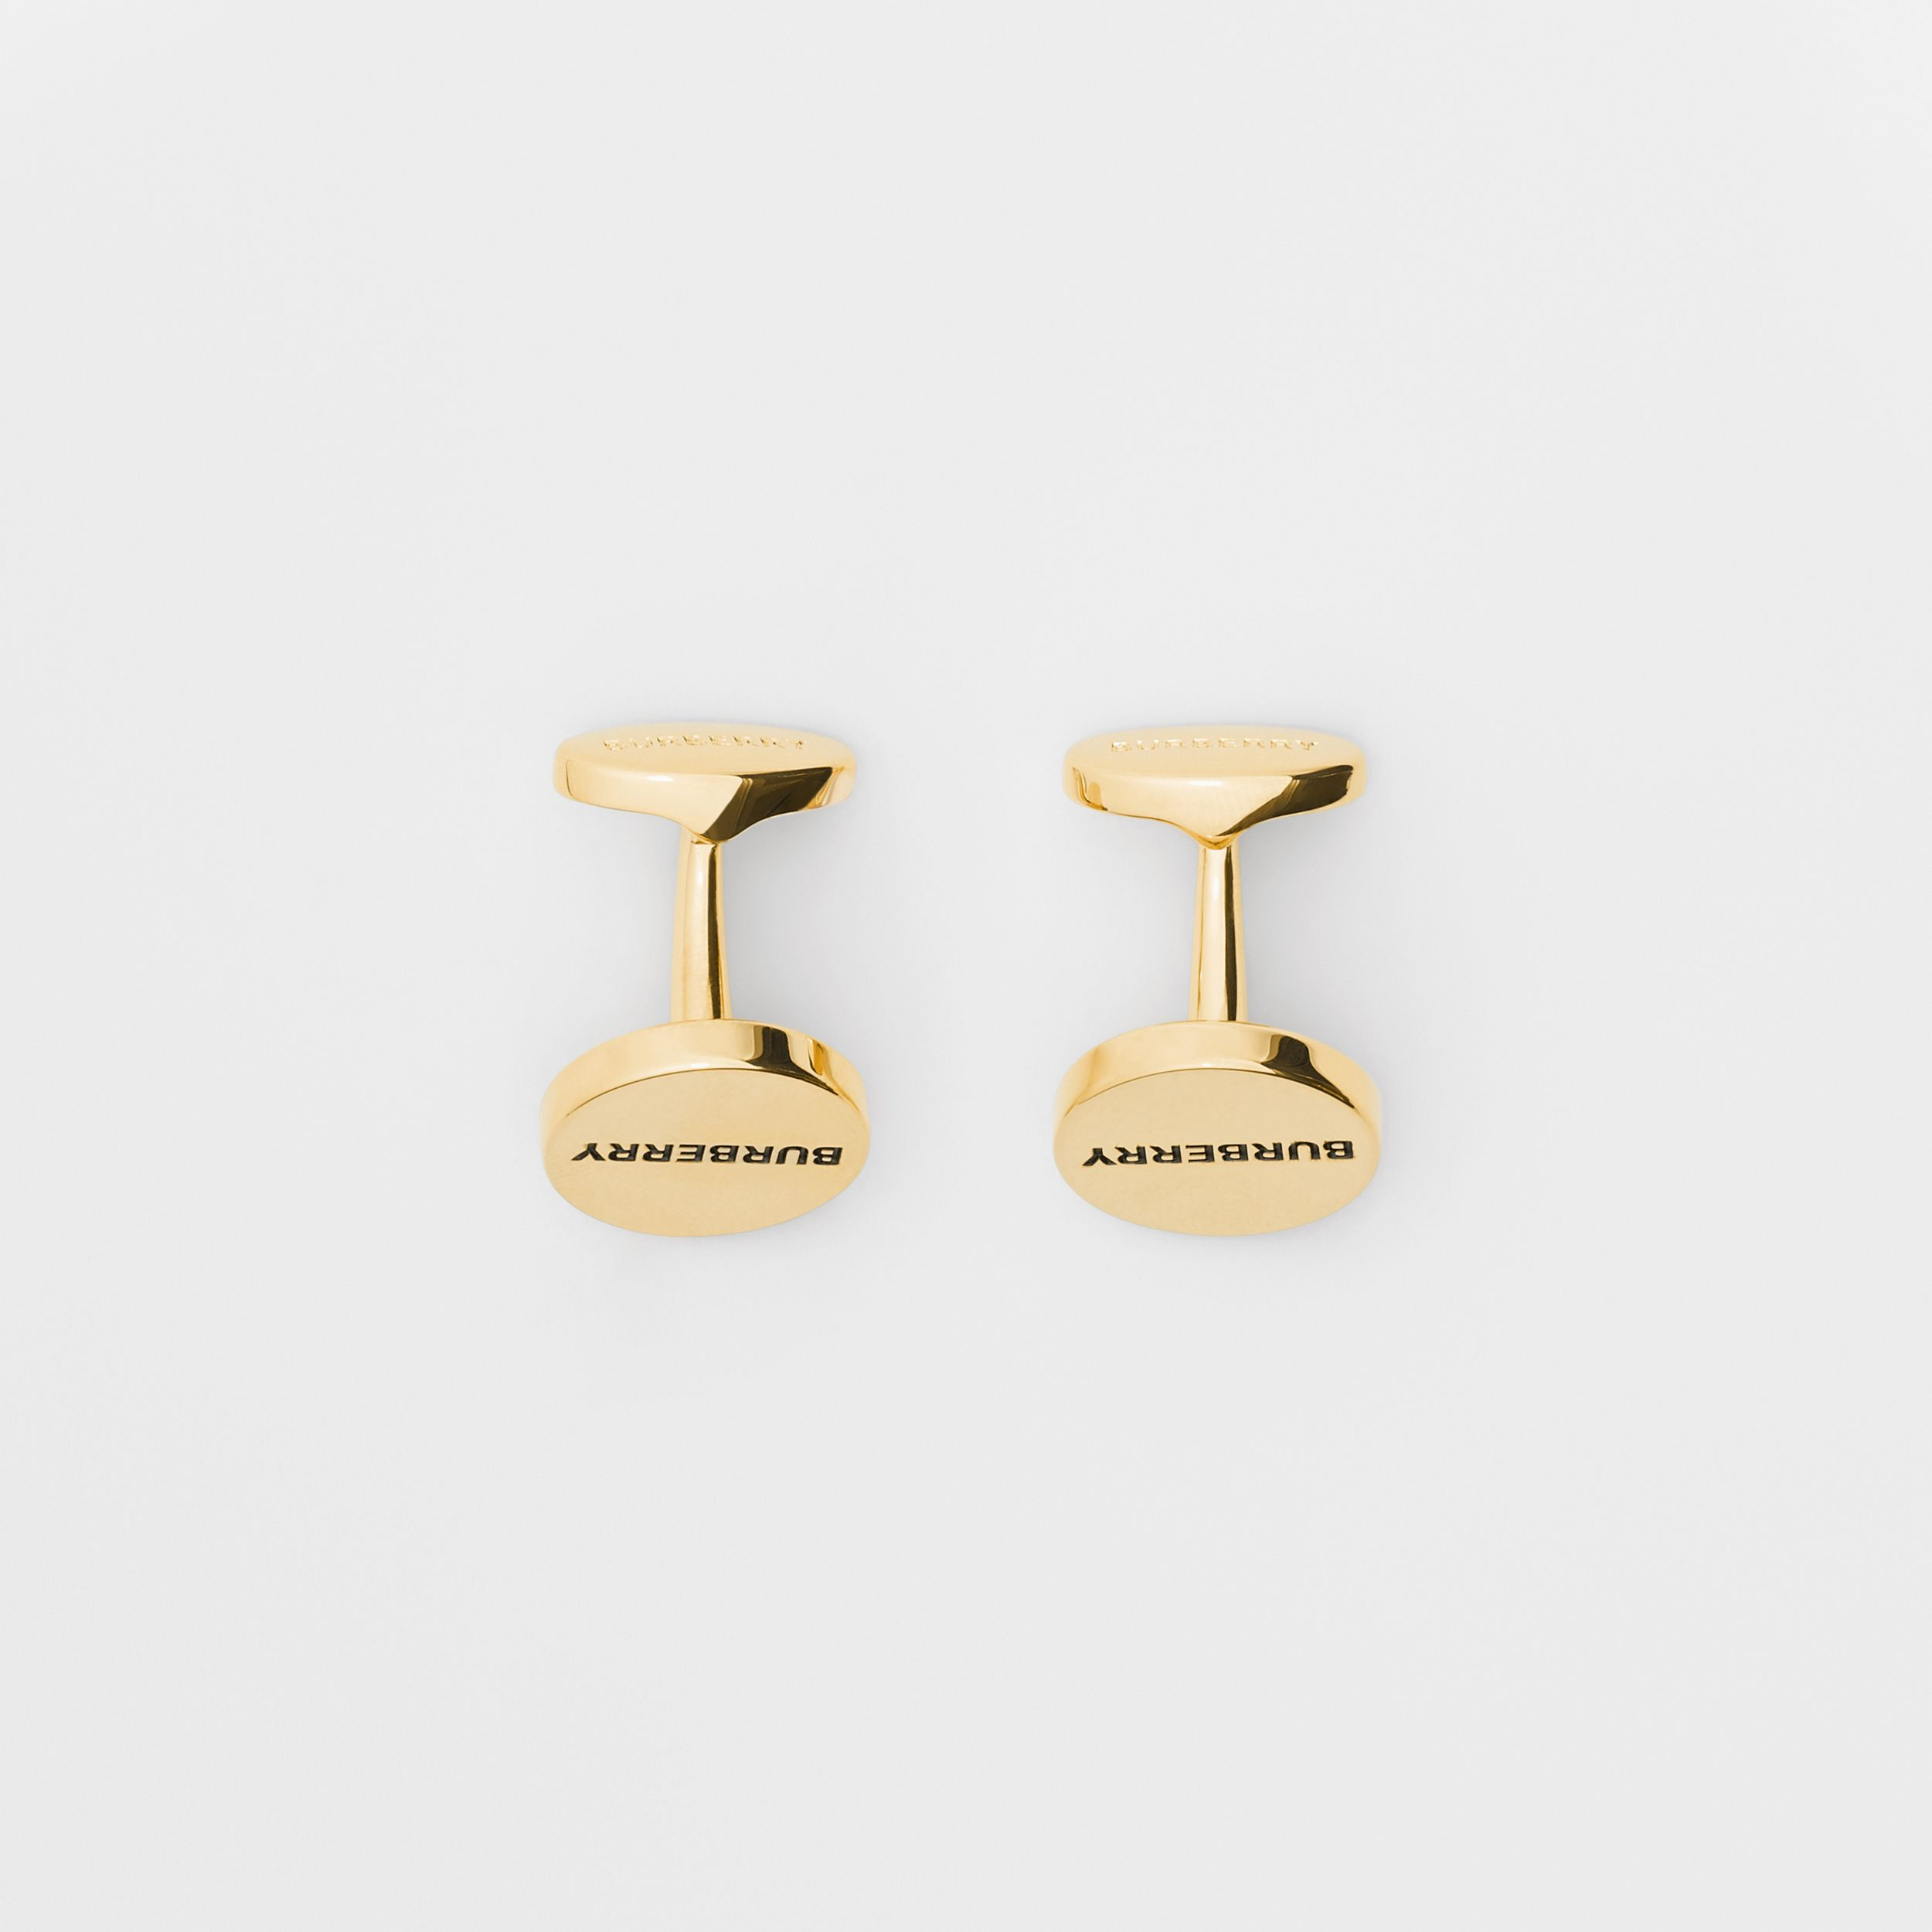 Engraved Gold-plated Cufflinks in Light - Men | Burberry - 3